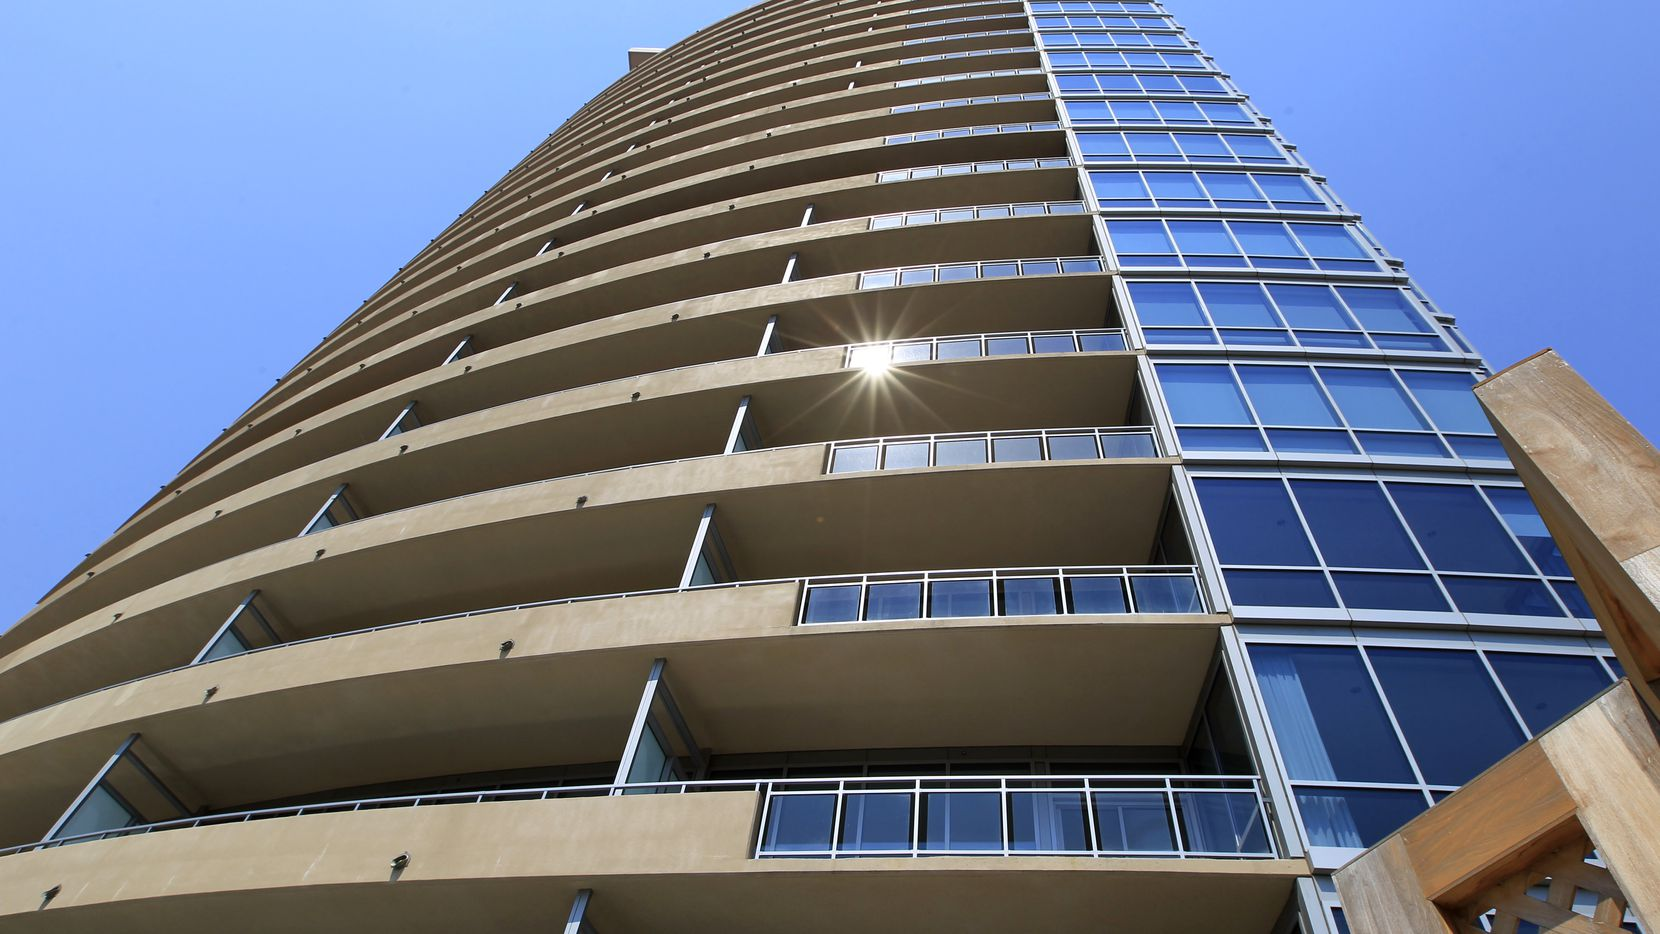 Both boomers and millennial like Dallas' new high-rise housing but they want different size units.